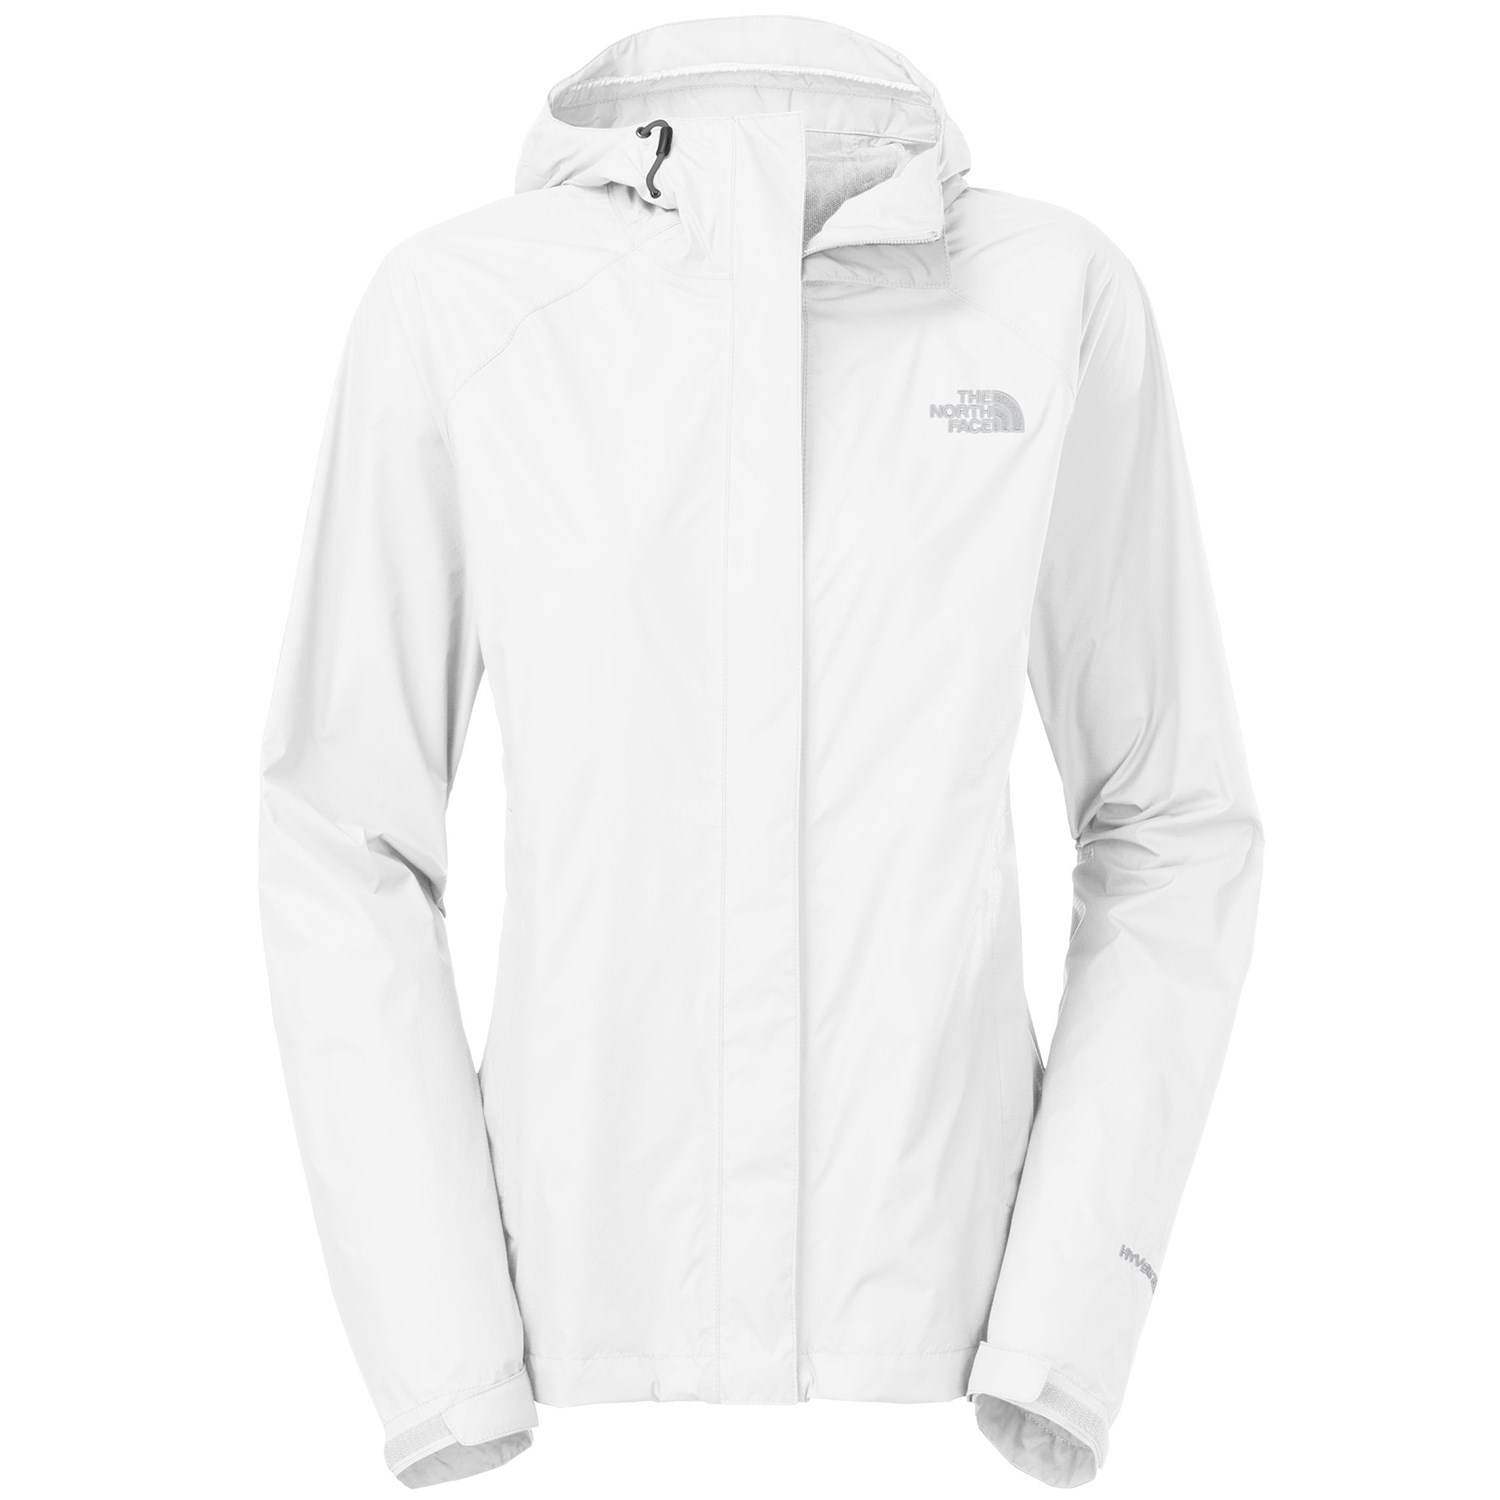 2db9d9de1 sale north face womens jacket size guide 088b7 05b58